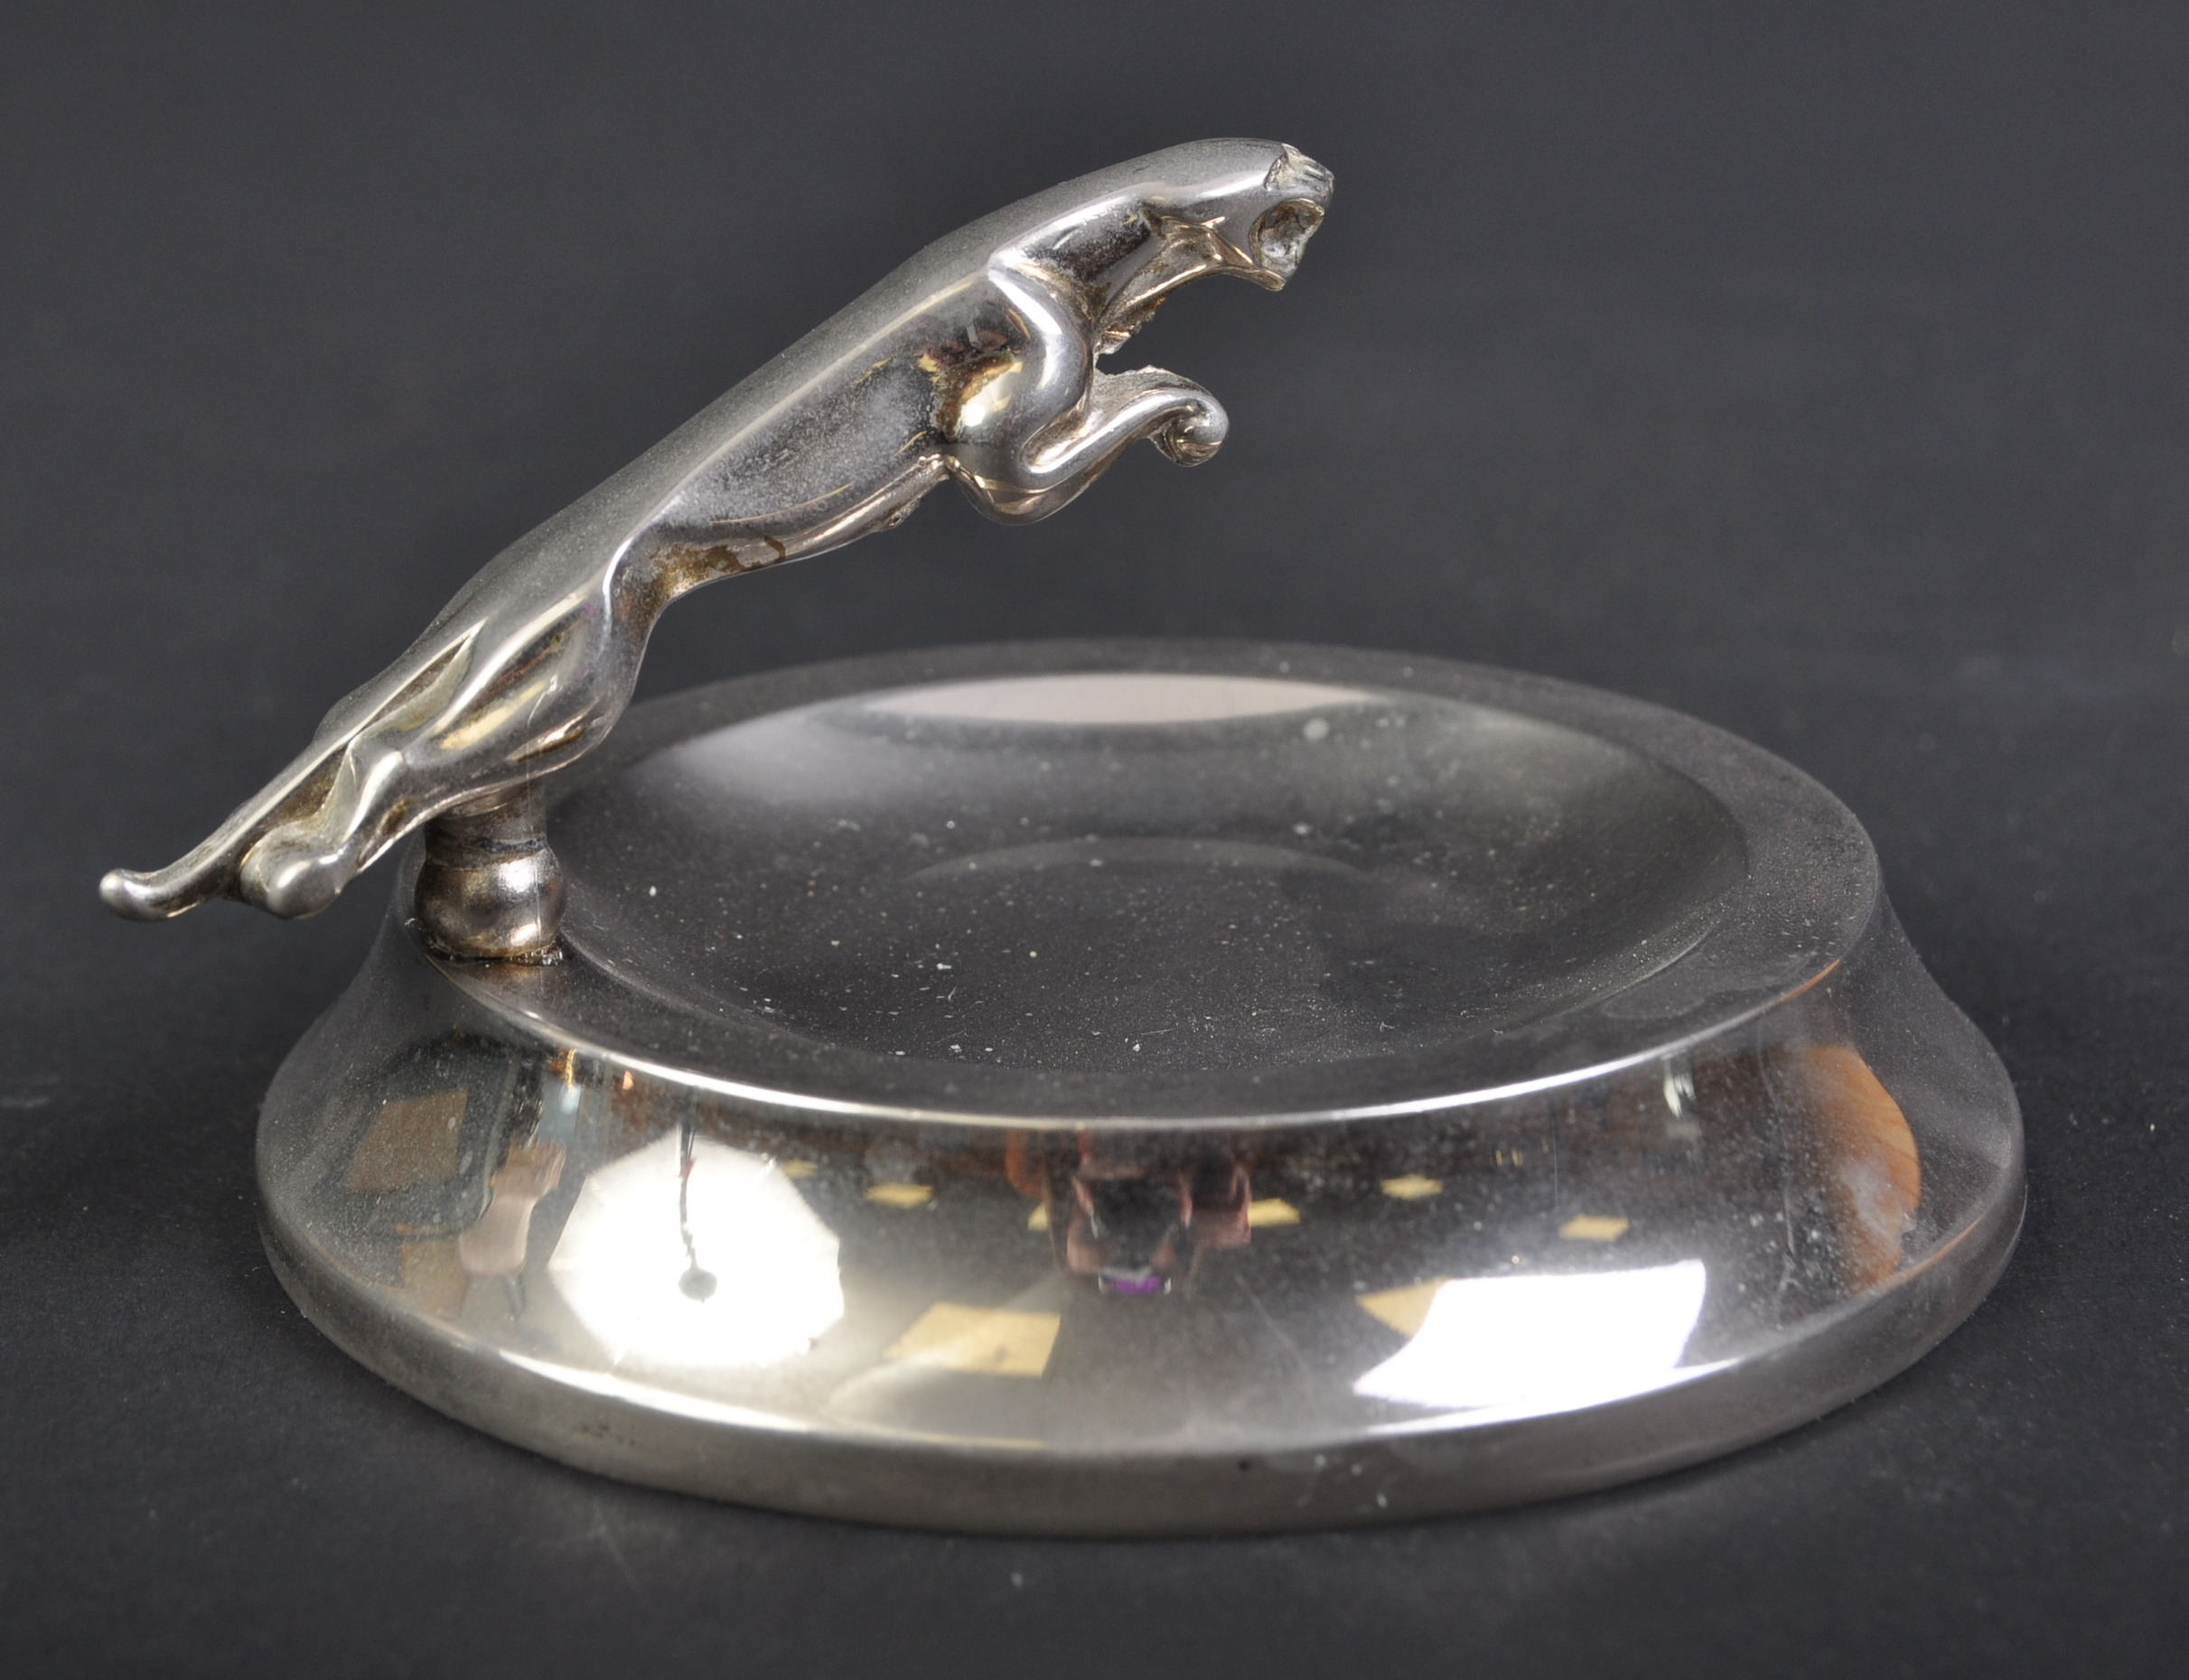 JAGUAR - SMALL 20TH CENTURY PROMOTIONAL ASHTRAY WITH MASCOT - Image 2 of 4